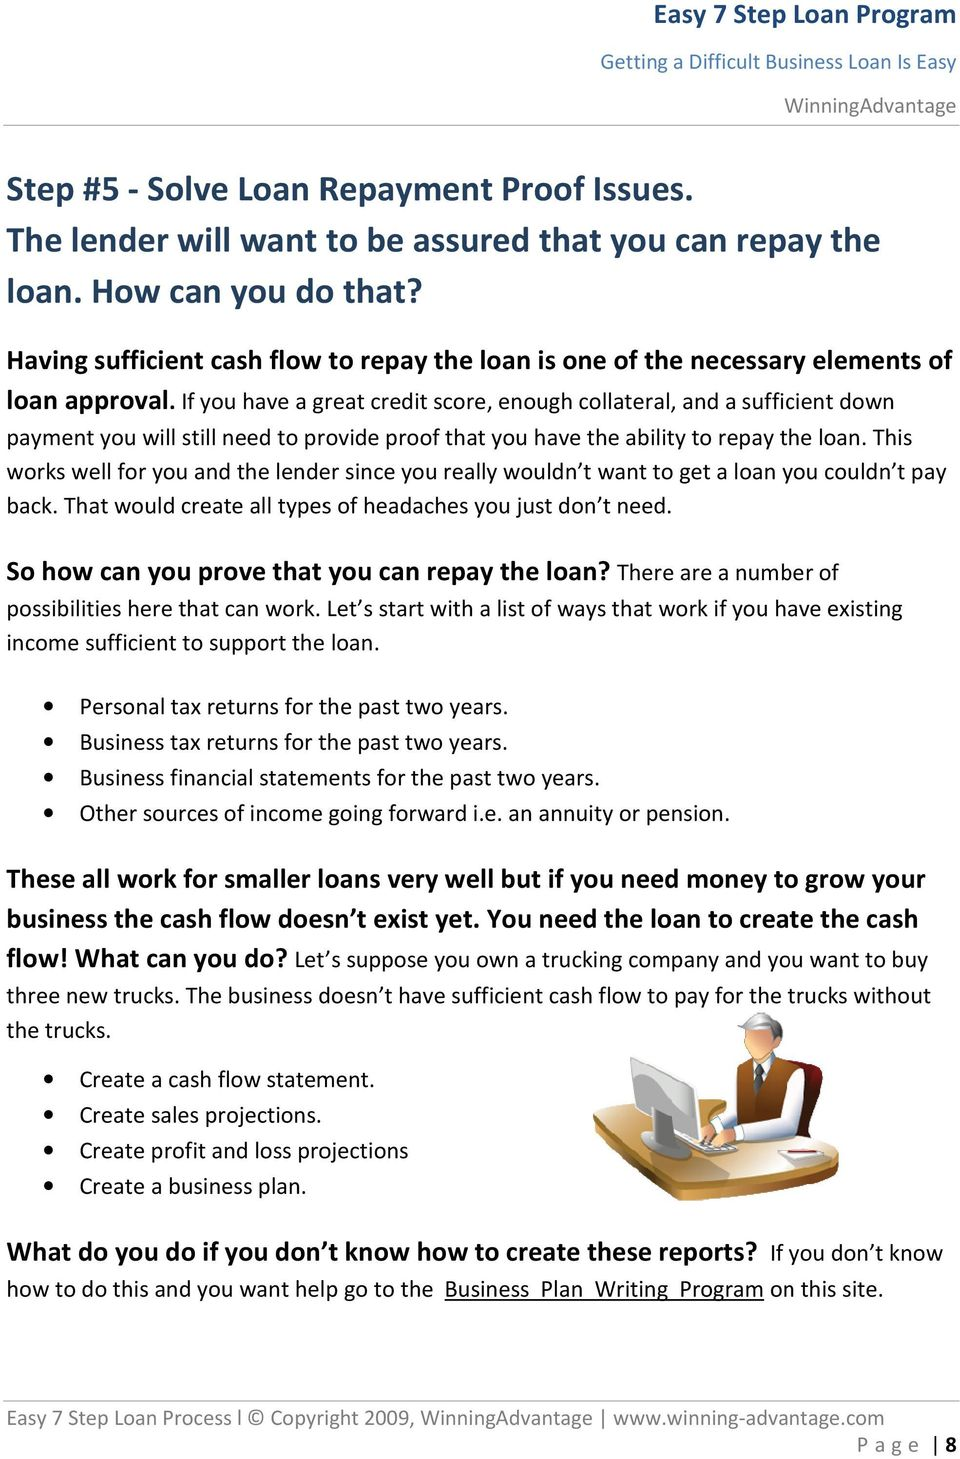 Business Plan Trucking With Financial Projection